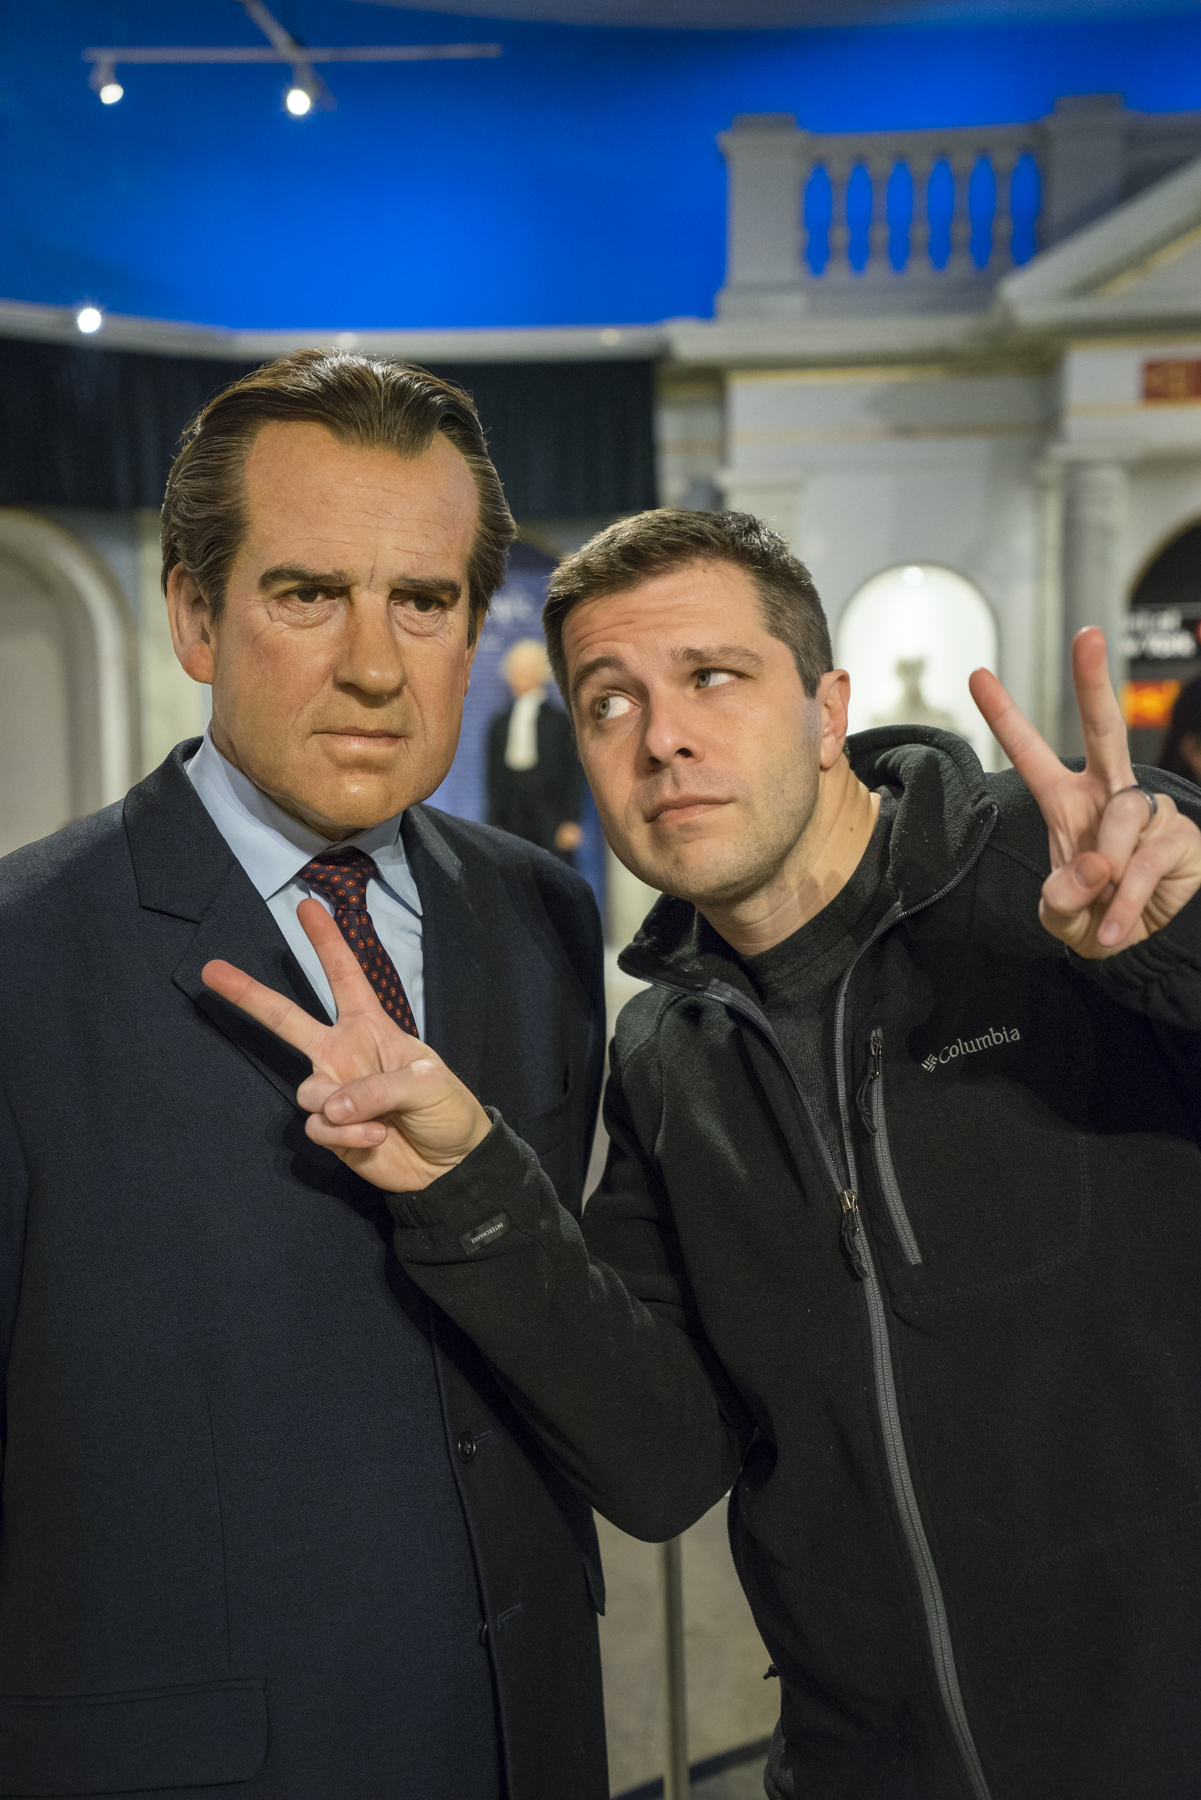 Richard Nixon at Madame Tussauds wax museum